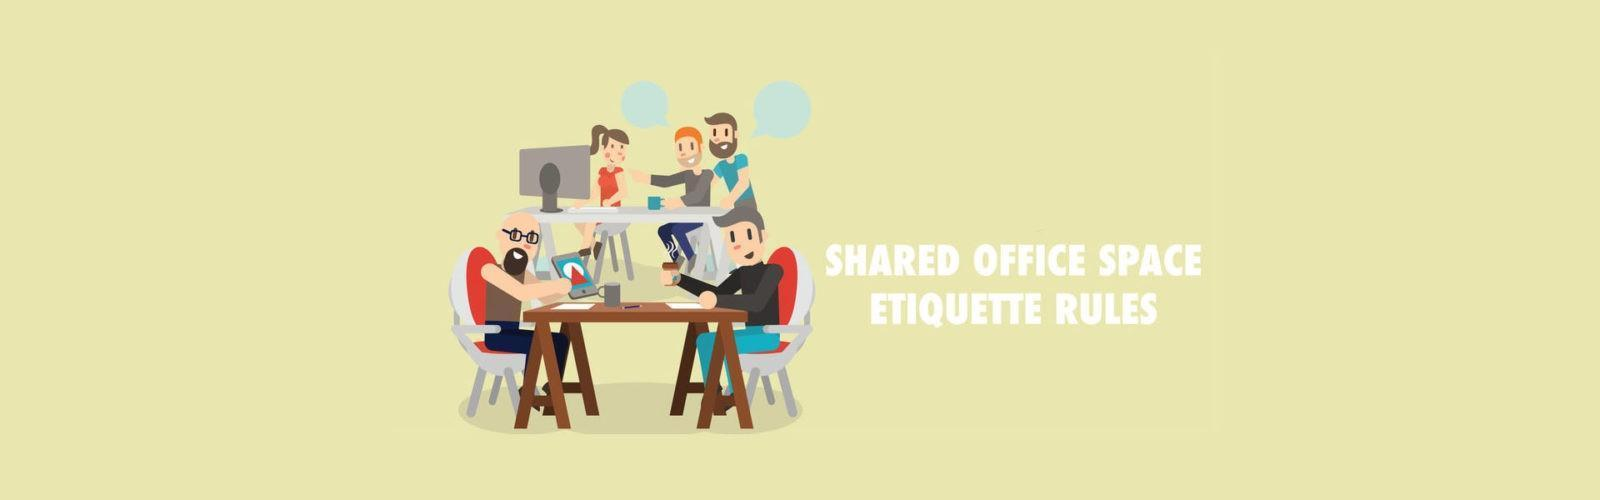 Taking care of your coworking space | Co-habitation rules